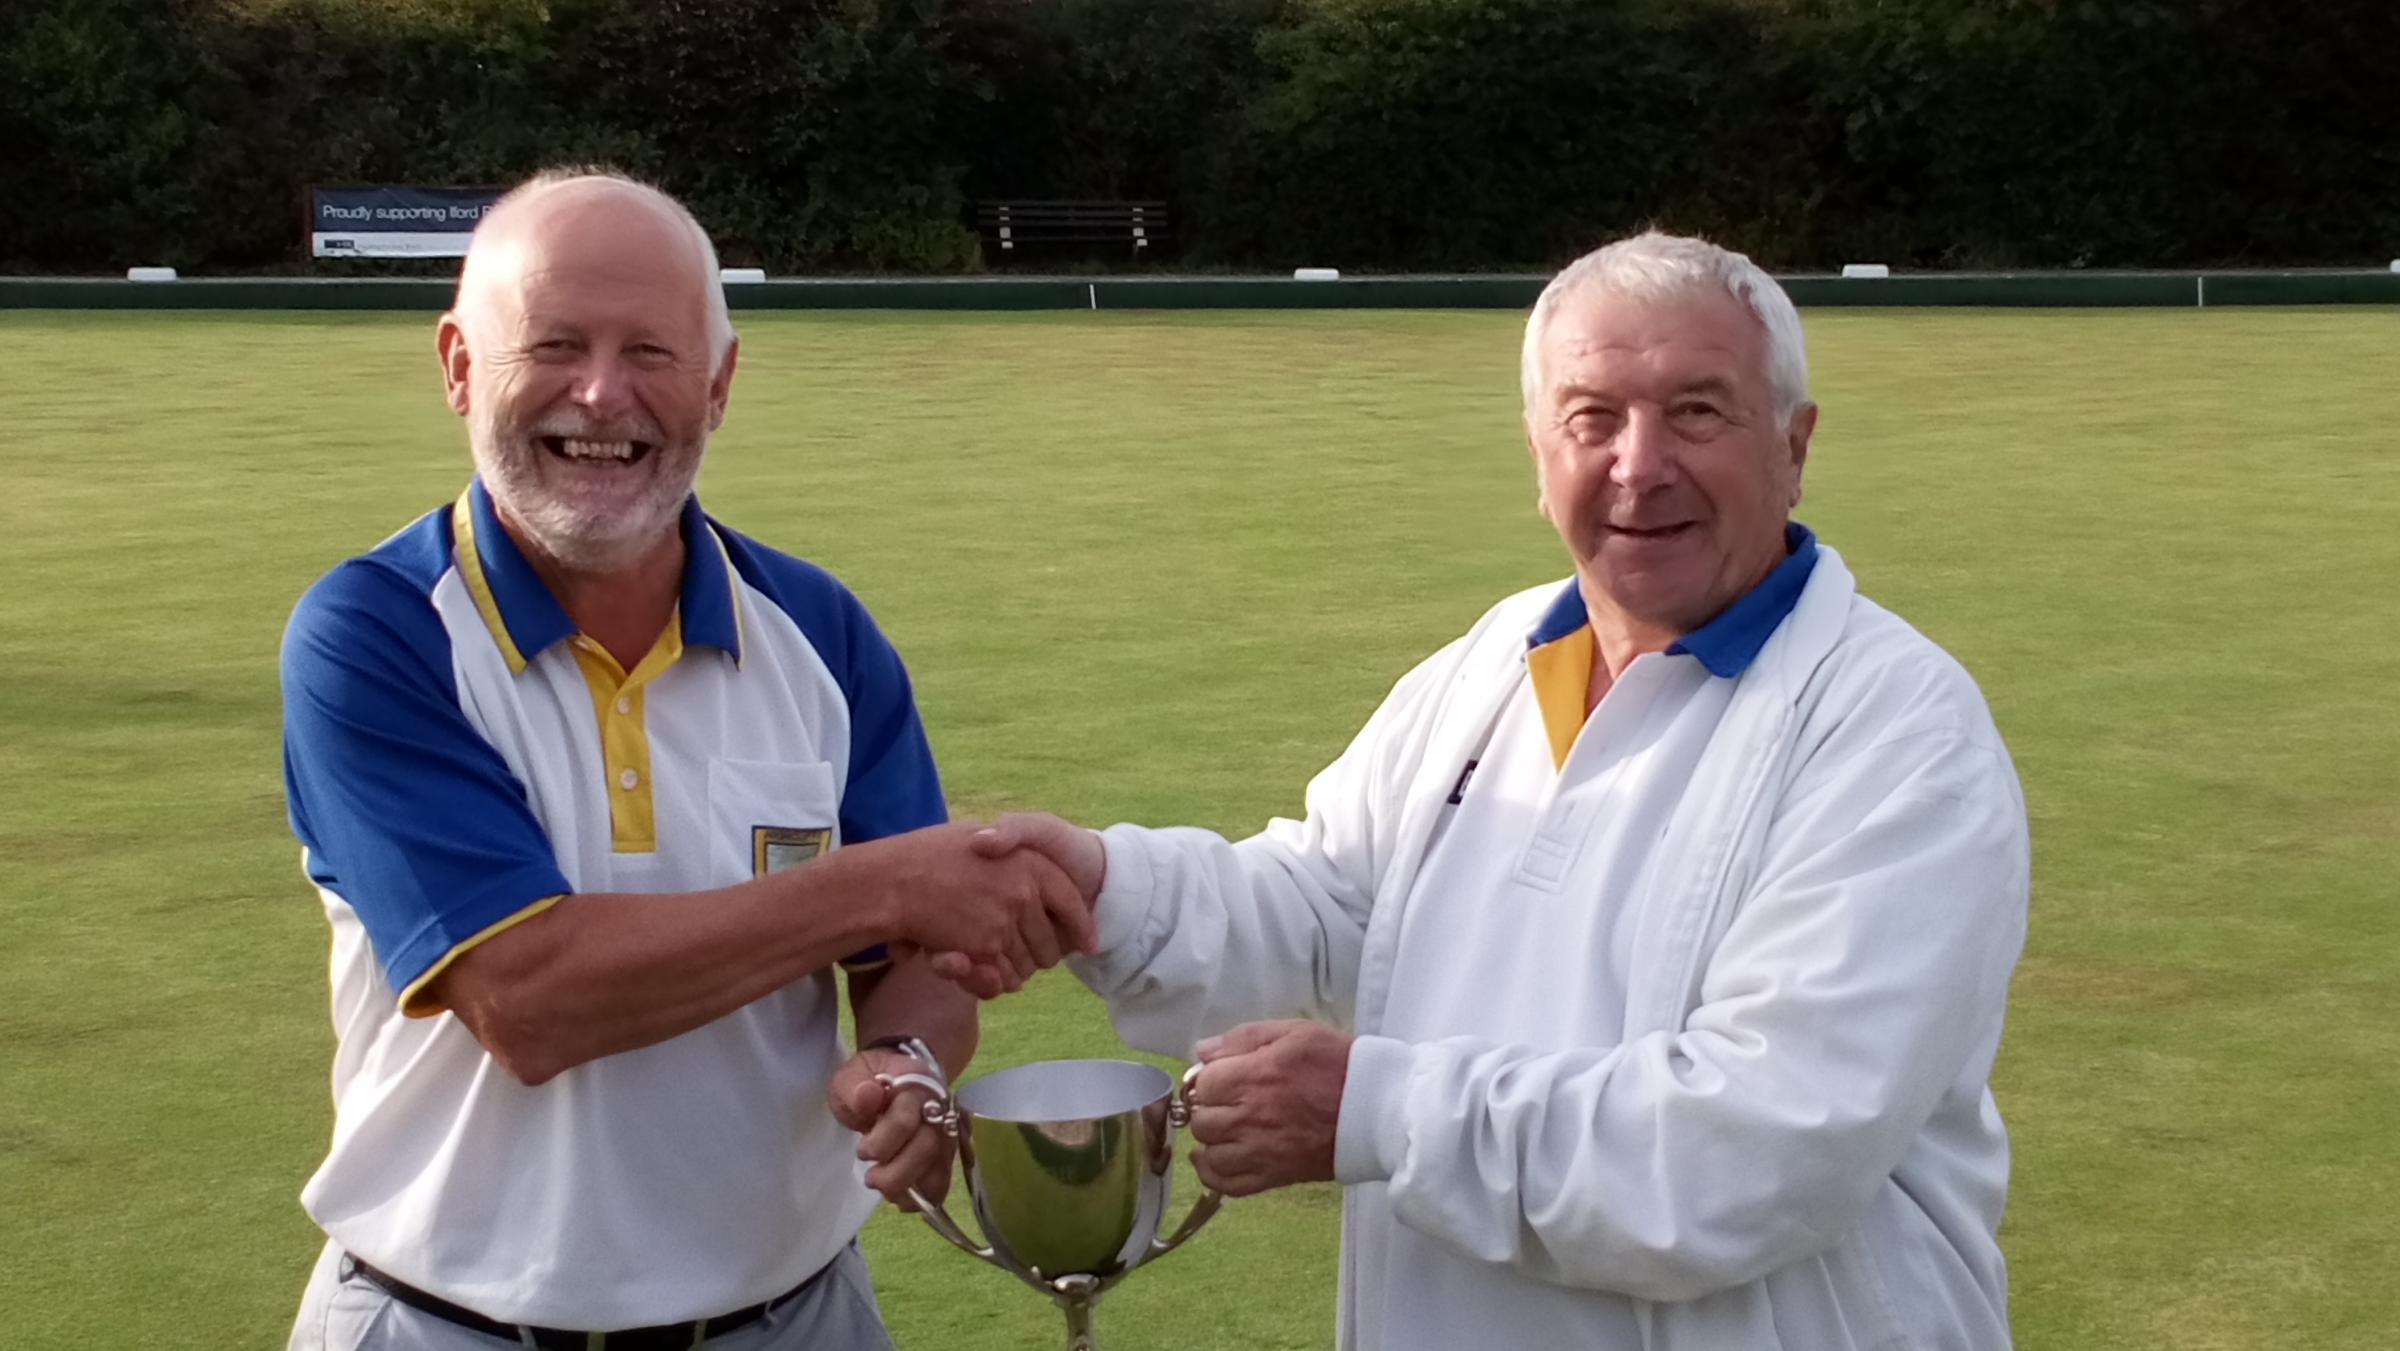 VICTORY: Mick McGing, Iford Bridge's president, presents the Christchurch Times Cup to Highcliffe captain Andy Phillips